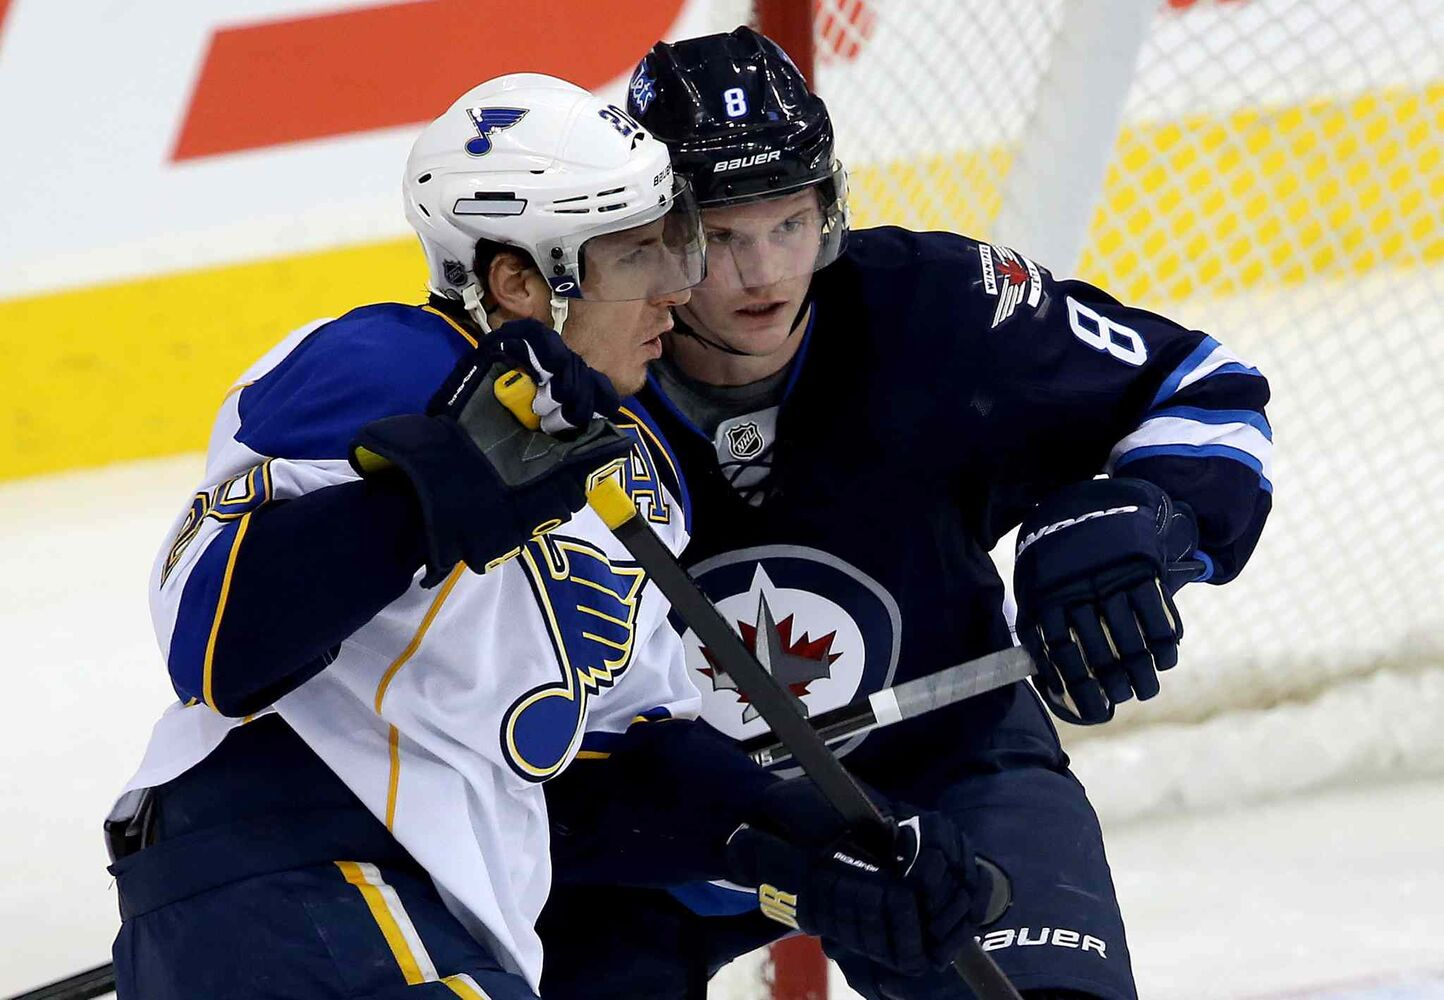 St. Louis Blues forward Alexander Steen (20) and Winnipeg Jets defenceman Jacob Trouba battle in front of the Jets net during the first period. (TREVOR HAGAN / THE CANADIAN PRESS)